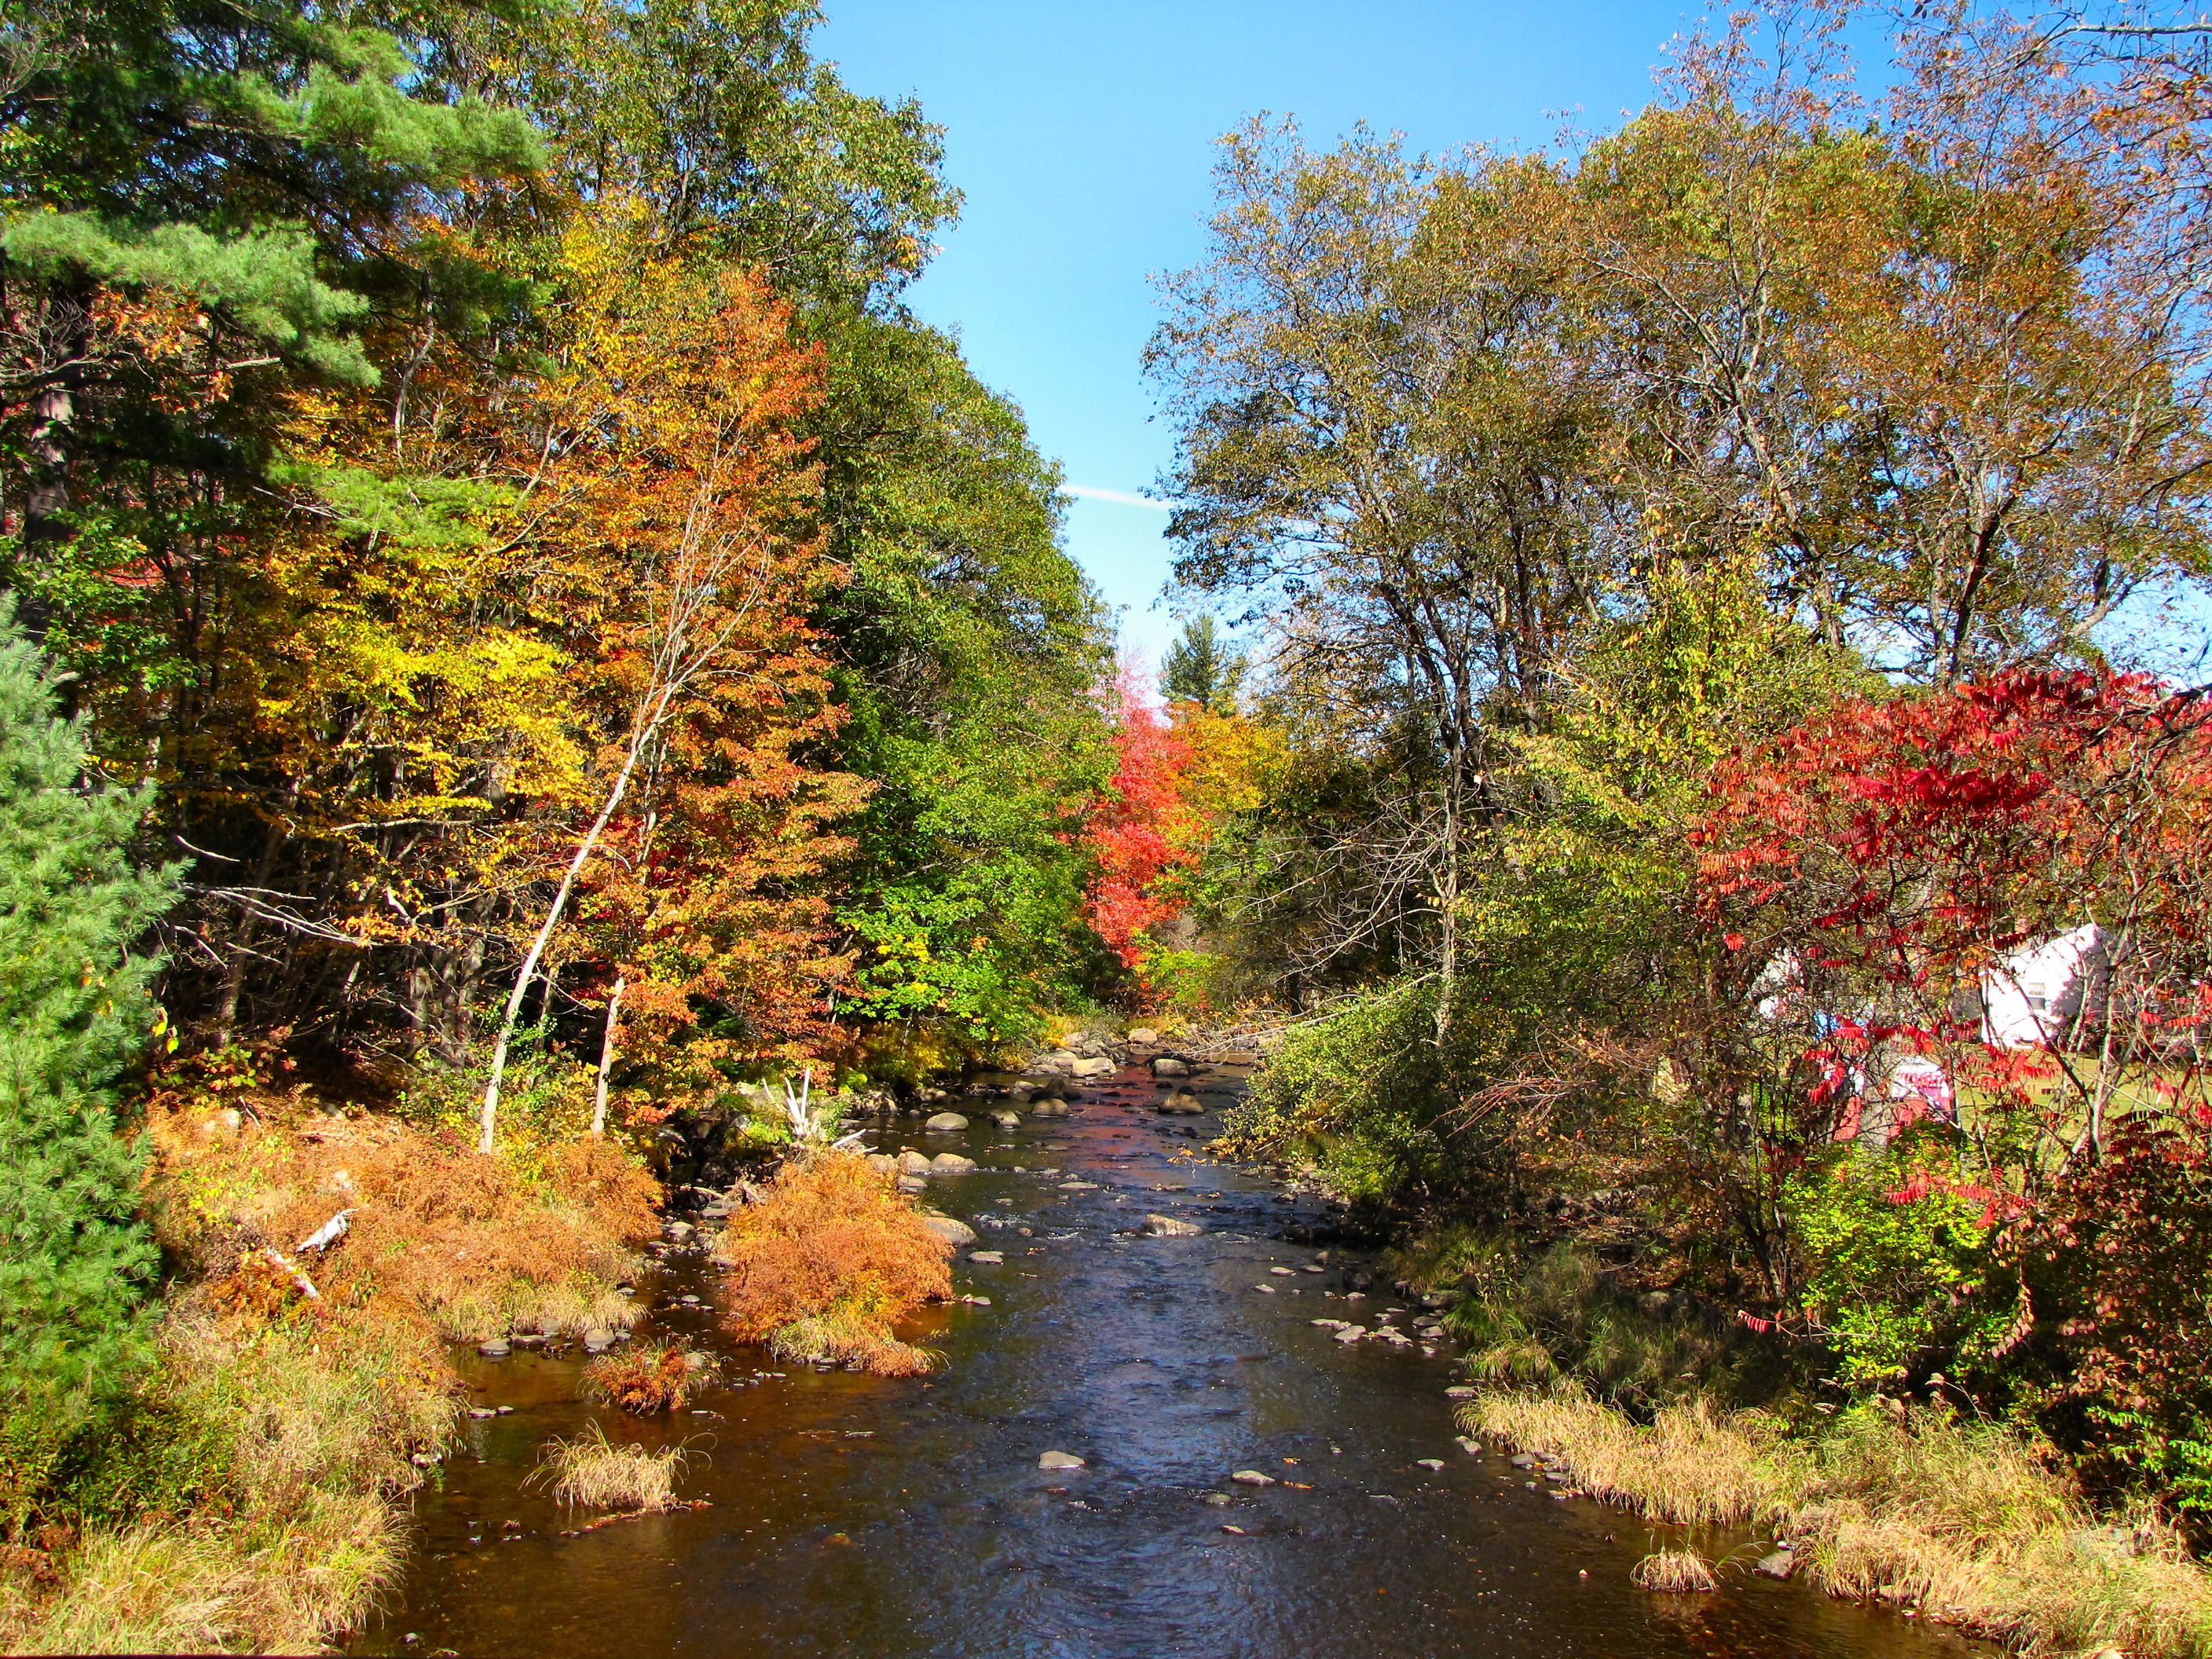 Otter Brook in the Fall by craftywench-nh